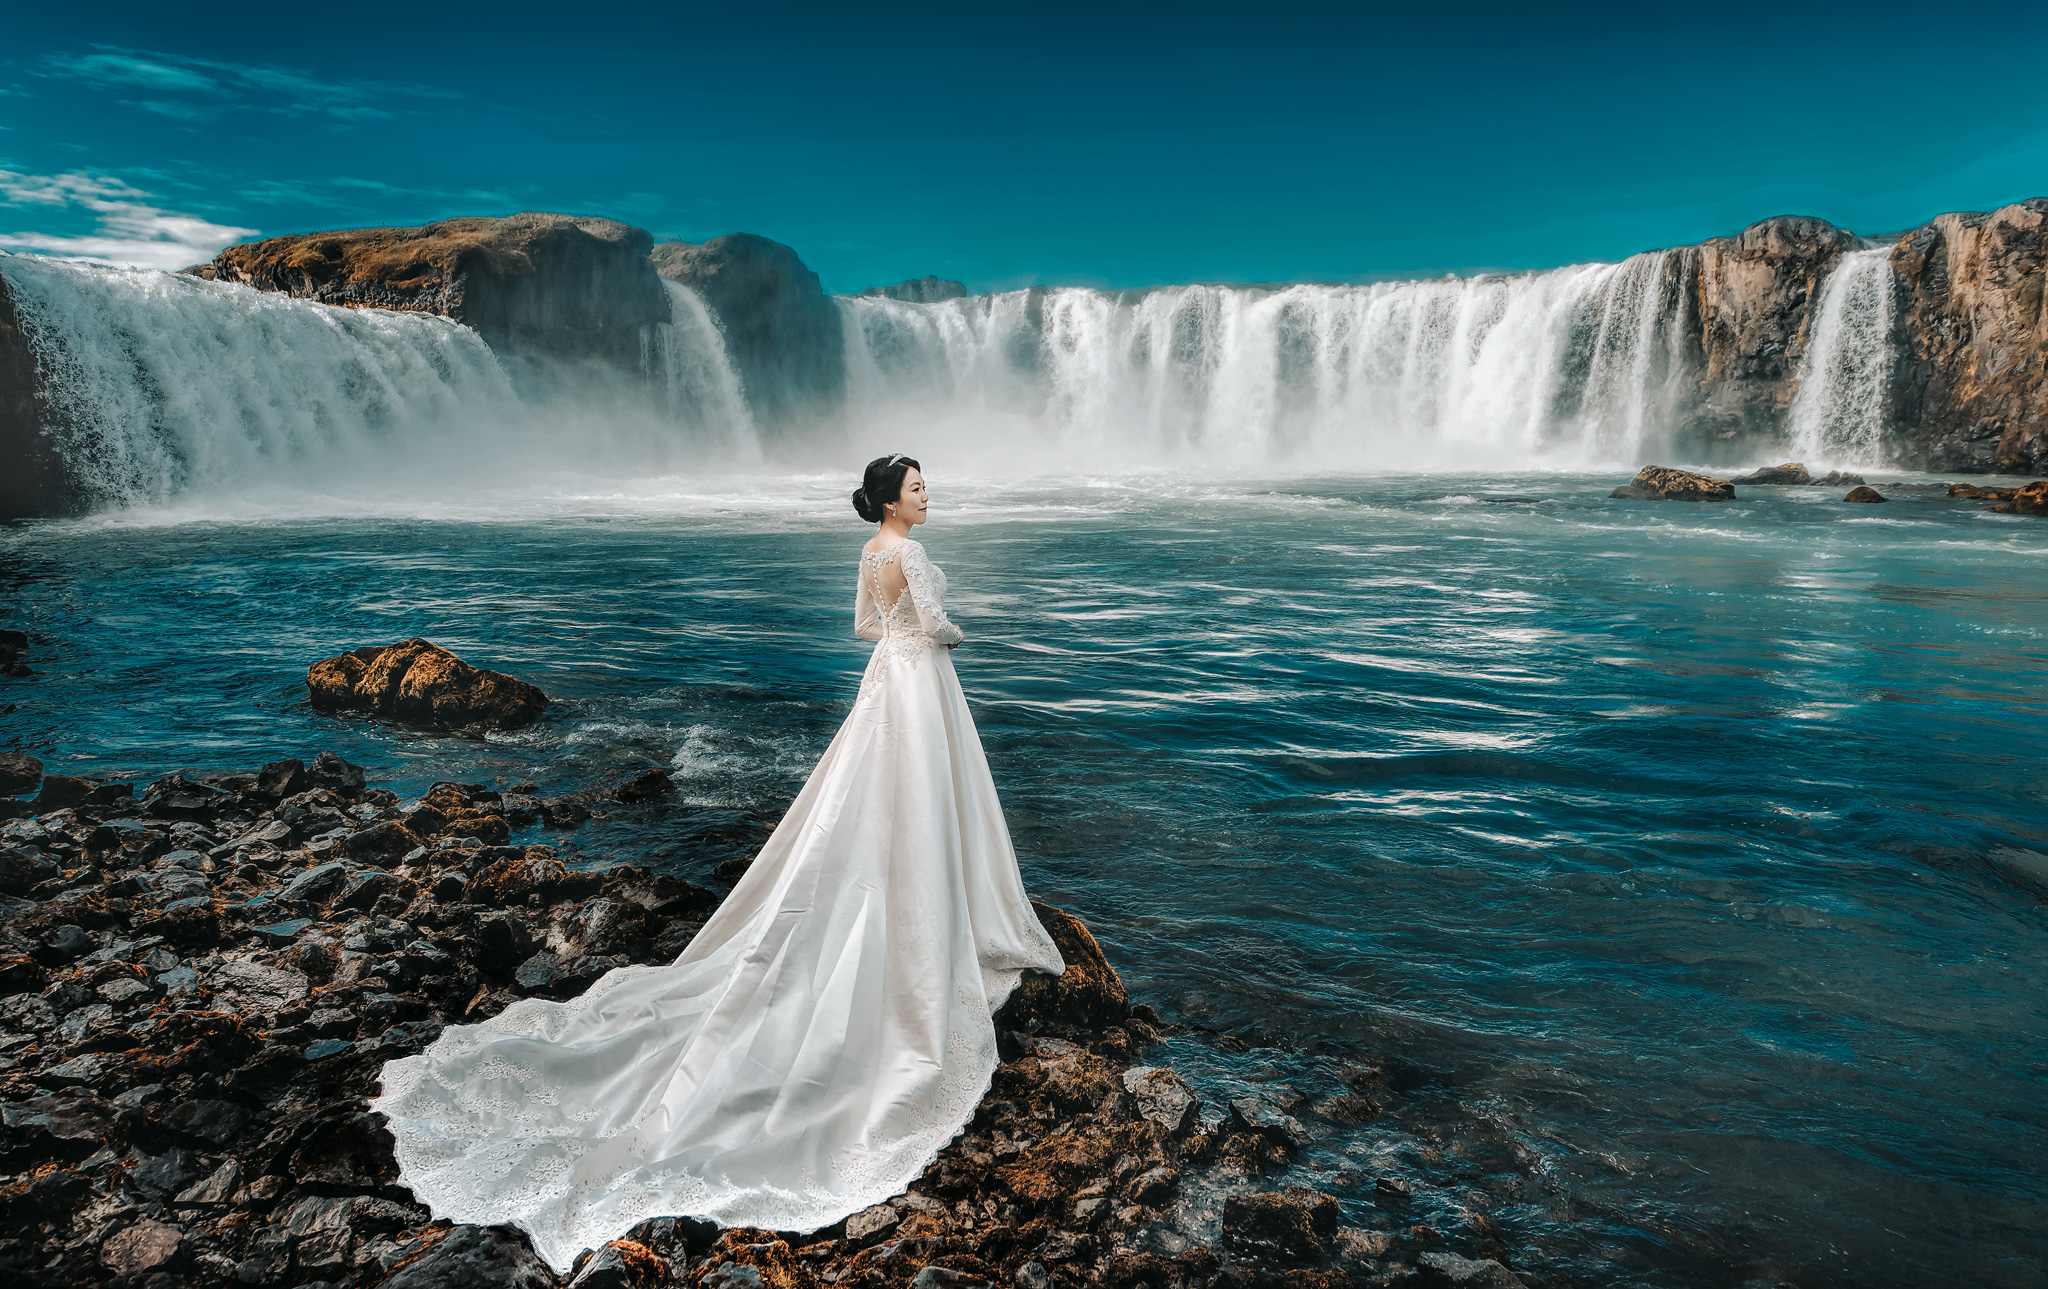 Godafoss-in Iceland-bride-in-cathedral-gown-against-waterfall-photo-by-edwin-tan-photography